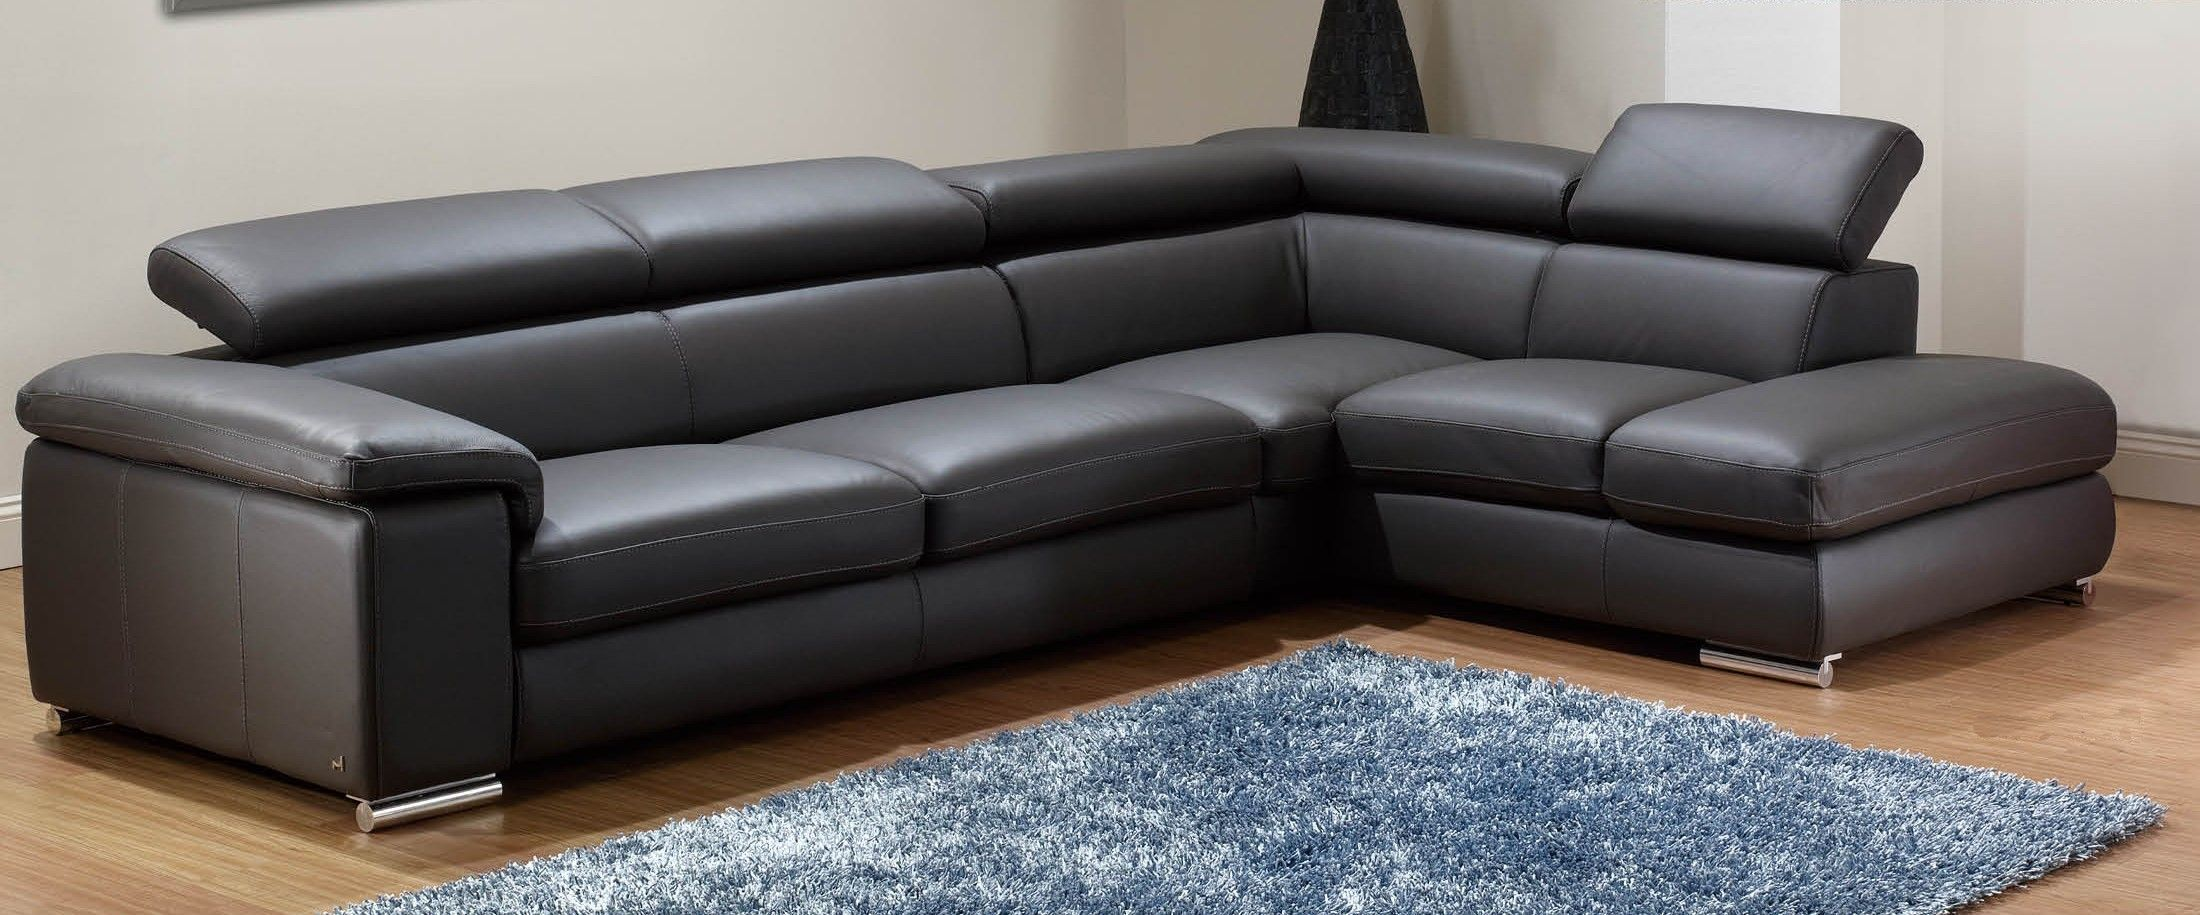 awesome modern leather sectional sofa  epic modern leather sectional sofa in sofas and couches. awesome modern leather sectional sofa  epic modern leather